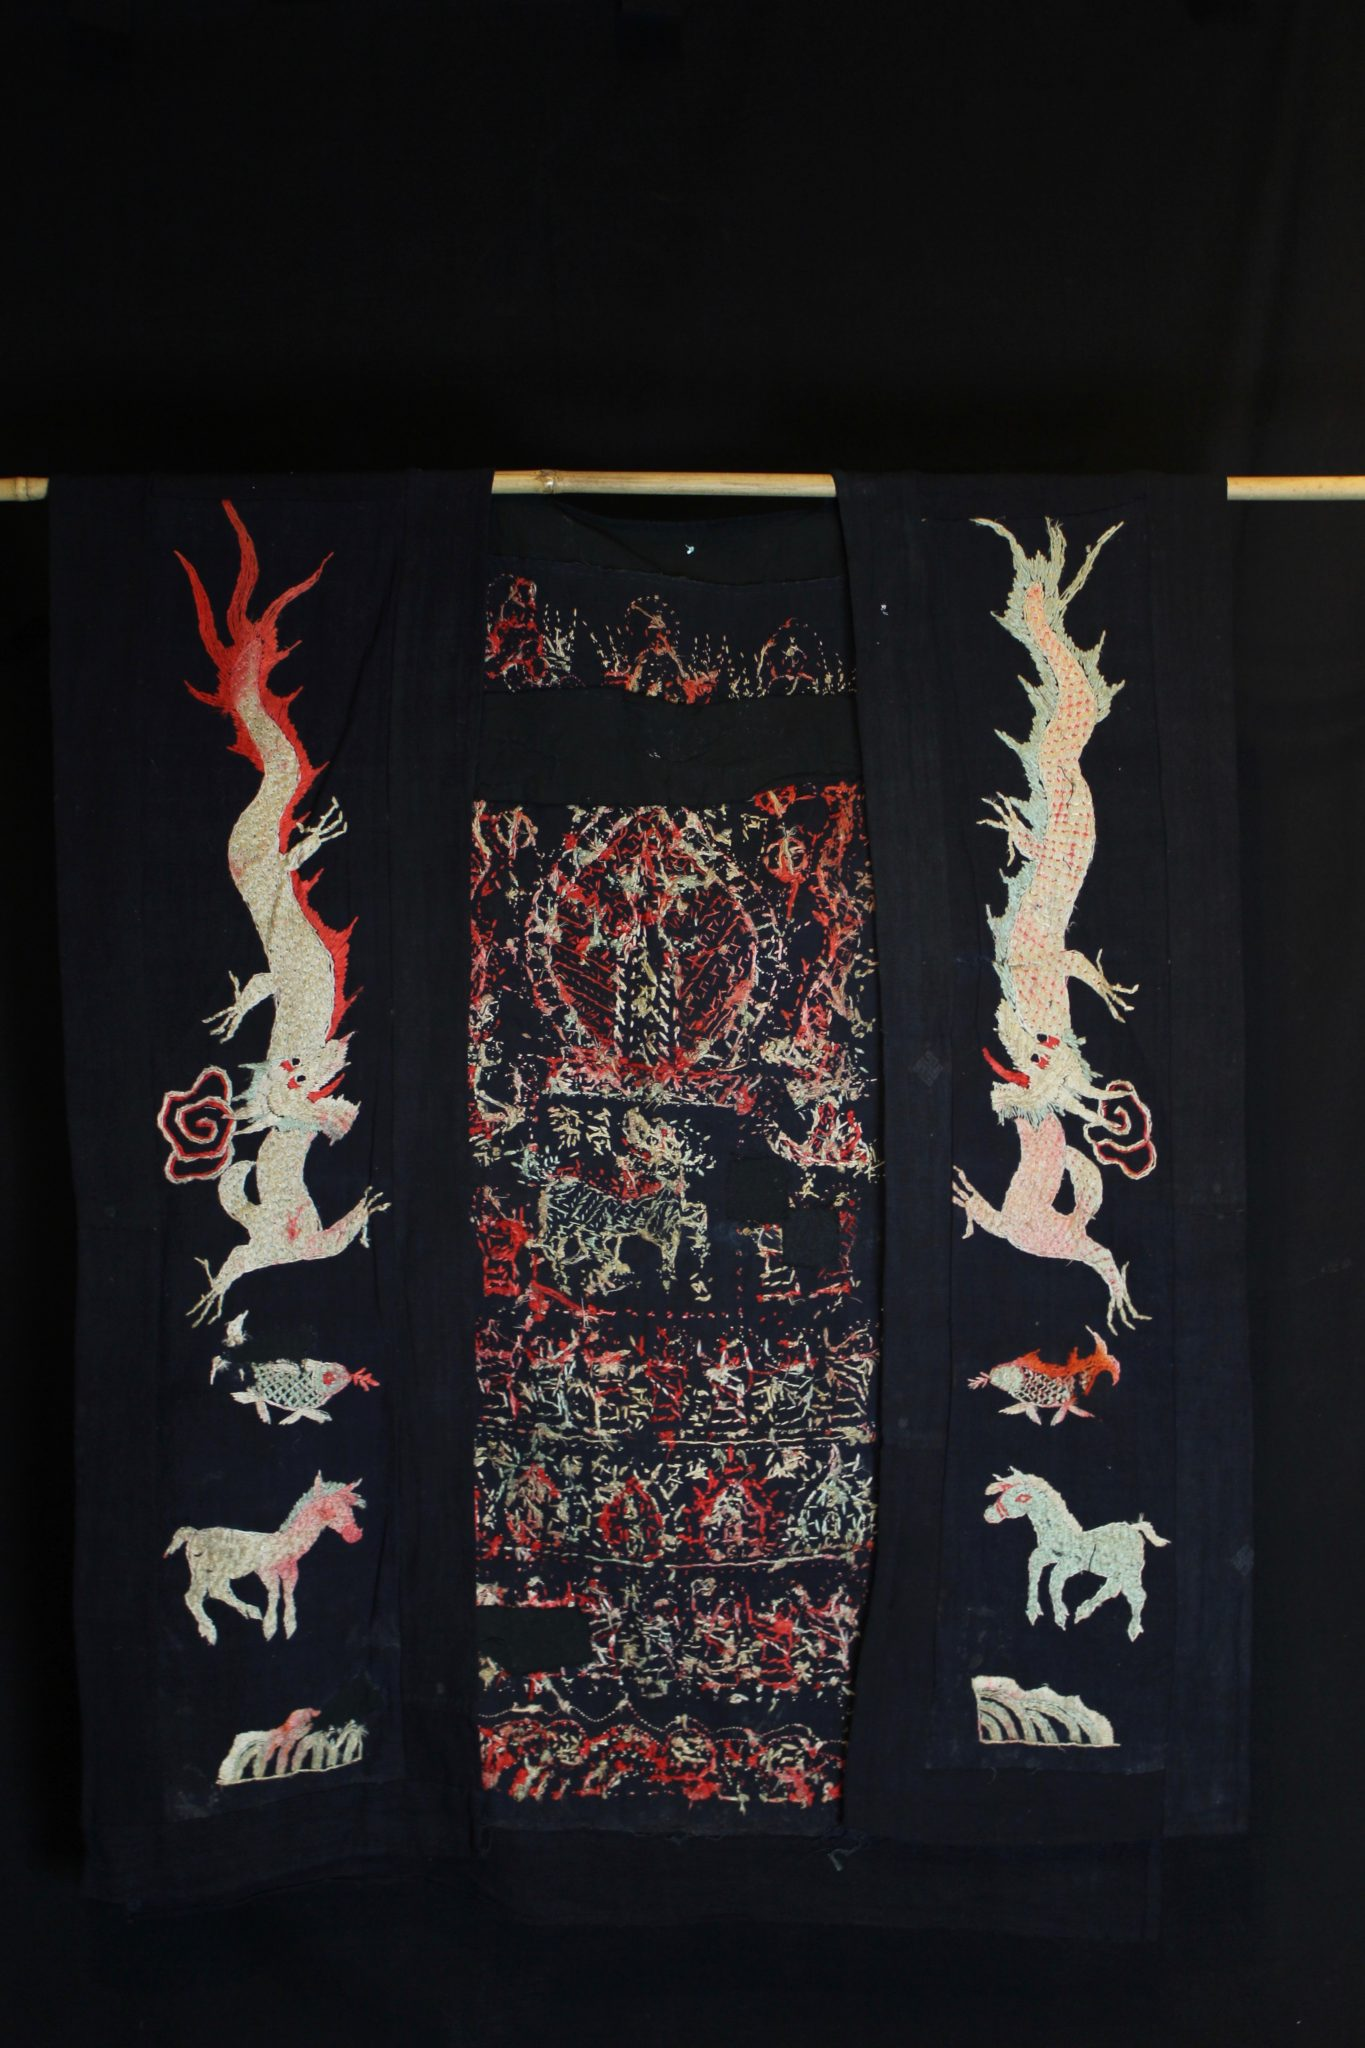 "Dragon Robe/Ritual Cloak (back), Vietnam, Late 19th to early 20th c, Dao Lan-Tien people, Early 20th century, Cotton dyed with local indigo, hand embroidered with silk. Worn only by high level shaman. The use of expensive and difficult to obtain brighter European dyes indicates an exceptional piece. The motif typically includes all the deities of heaven to clothe the shaman in the protection of the universe. Not a vain adornment, it is a reminder of man's place in the hierarchical order. Originally a female costume. Long ago shamans were women and men the providers. Not being encumbered by childbirth and rearing, men replaces women as shamans but retained this part of the sacred costume. *more detailed information available. 45"" x 26"", $2900."